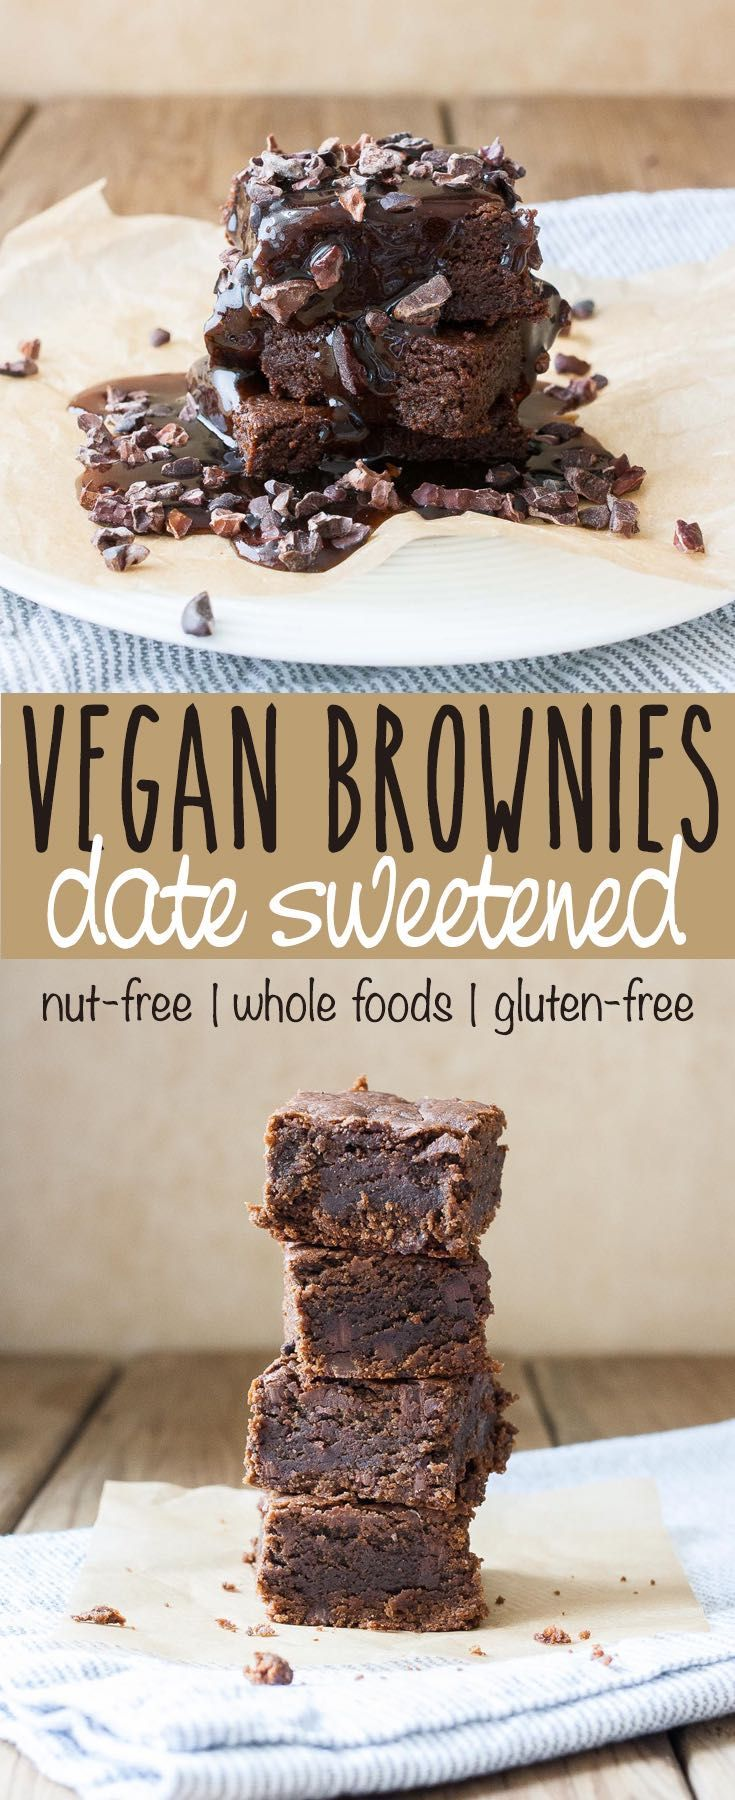 Perfect Vegan Date Sweetened Brownies with Caramel Crunch topping | www.veggiesdontbi... |